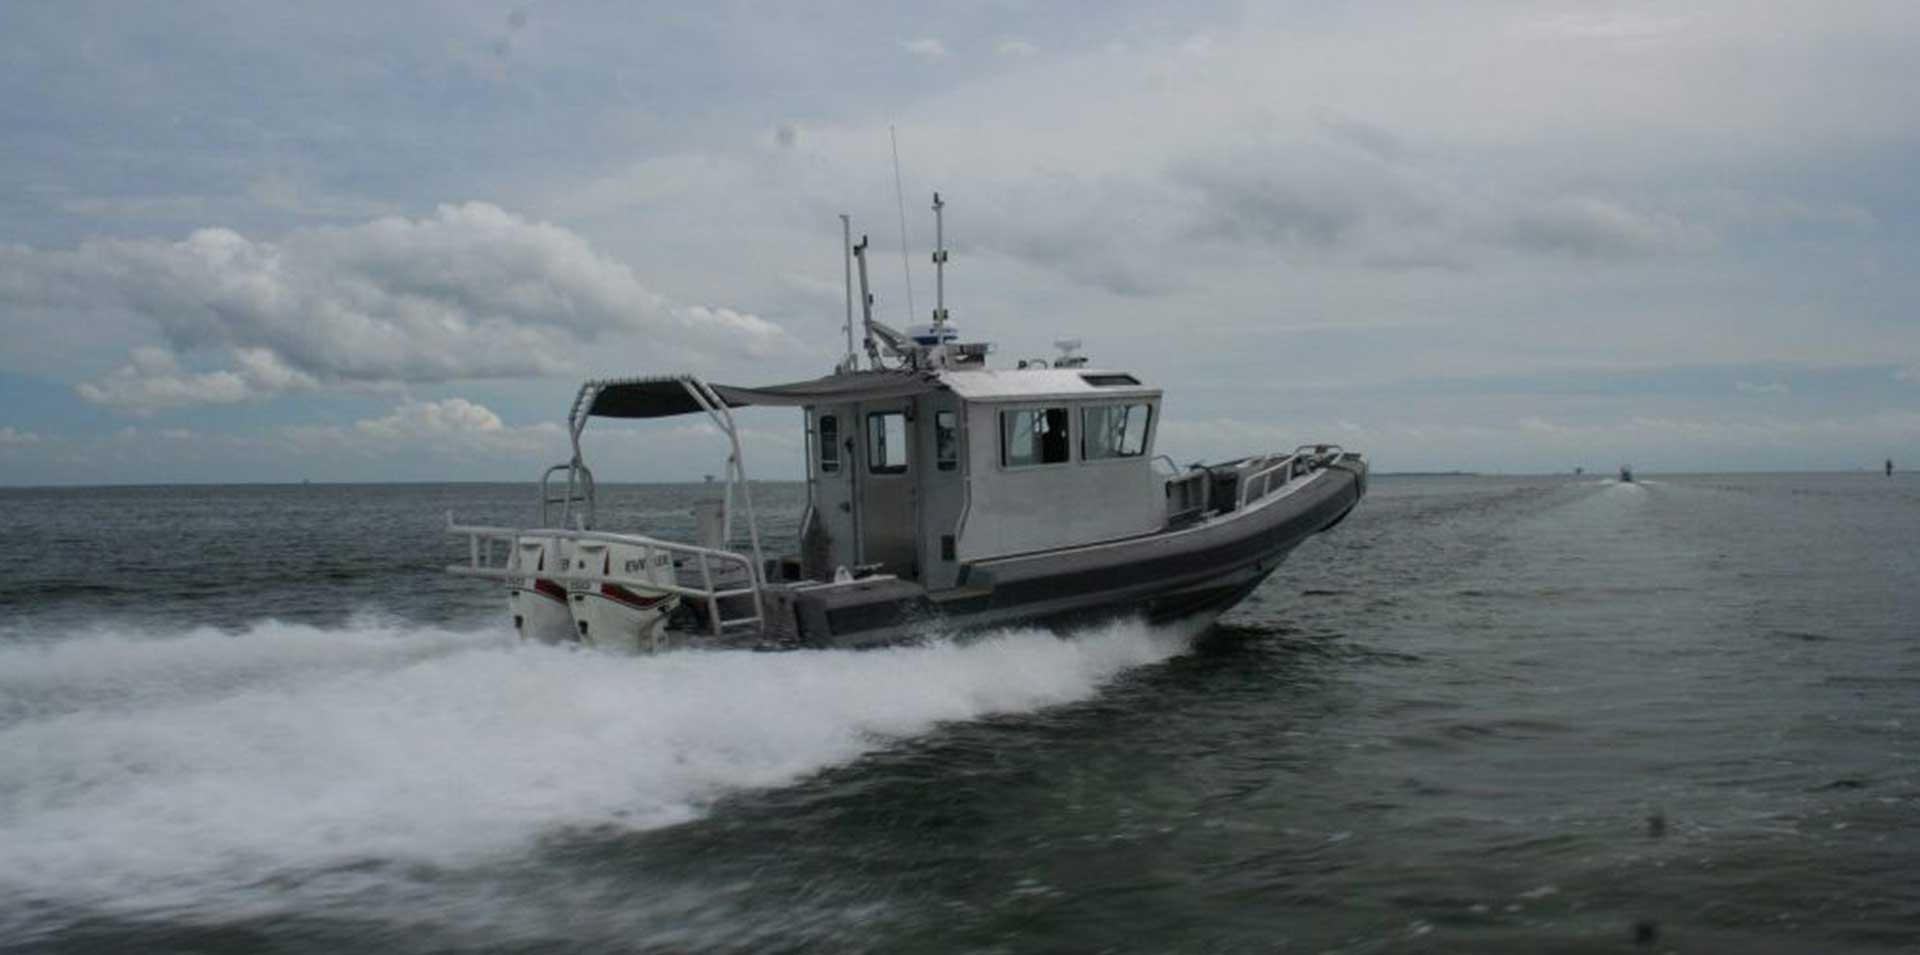 Silver Ships Ambar Series AM 1100 patrol boat with full pilothouse and awning back view